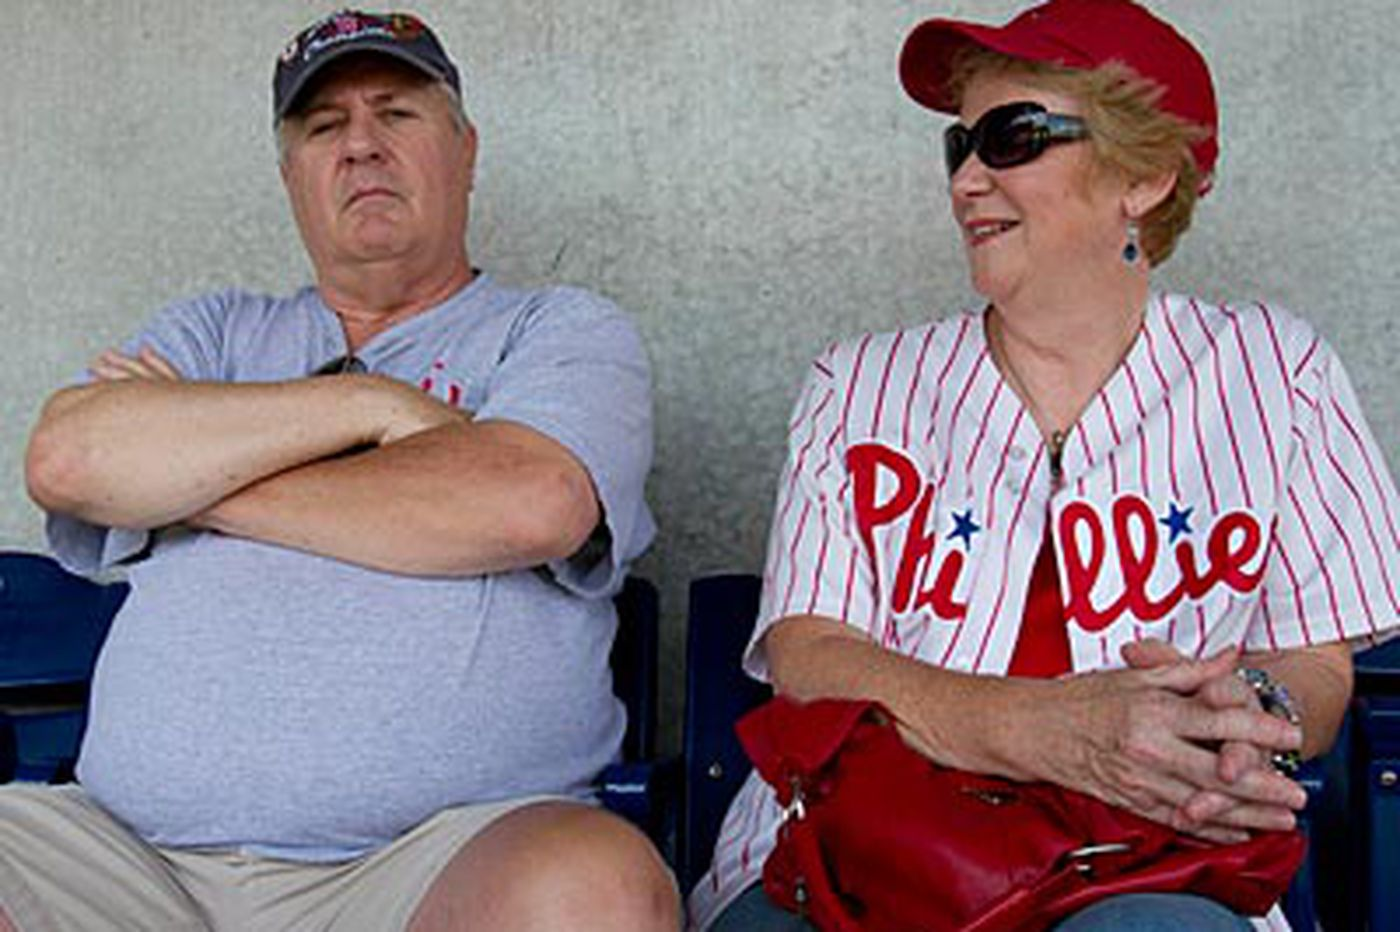 Broad Street Billy: 2 Billys share love of the game, though baseball worlds apart